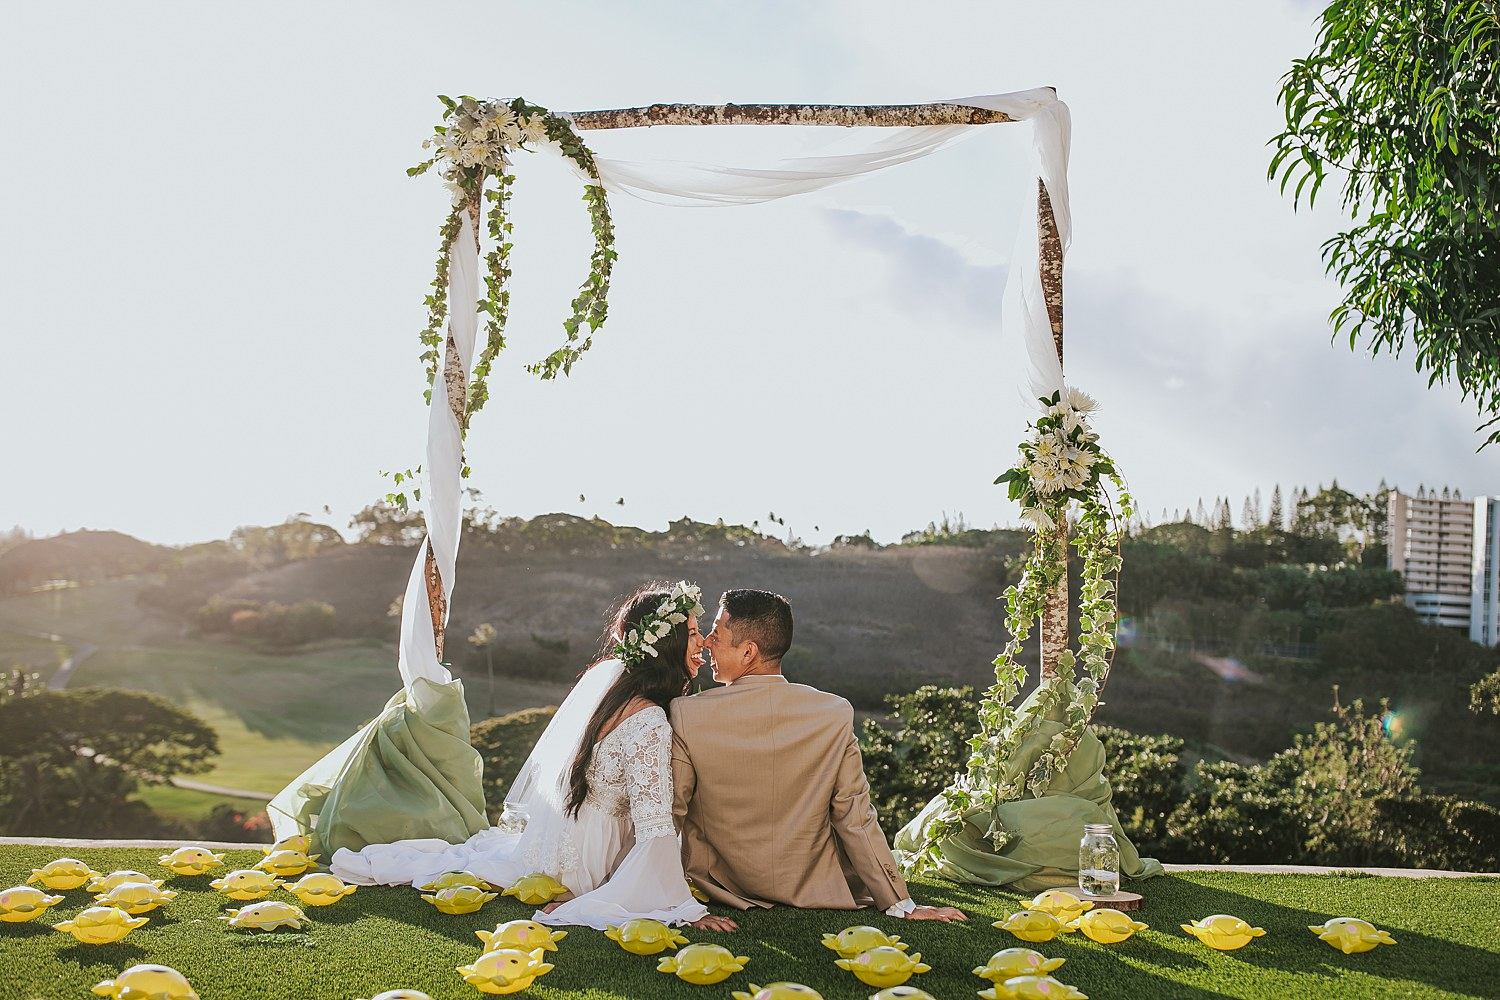 elopement during hawaii's covid restrictions